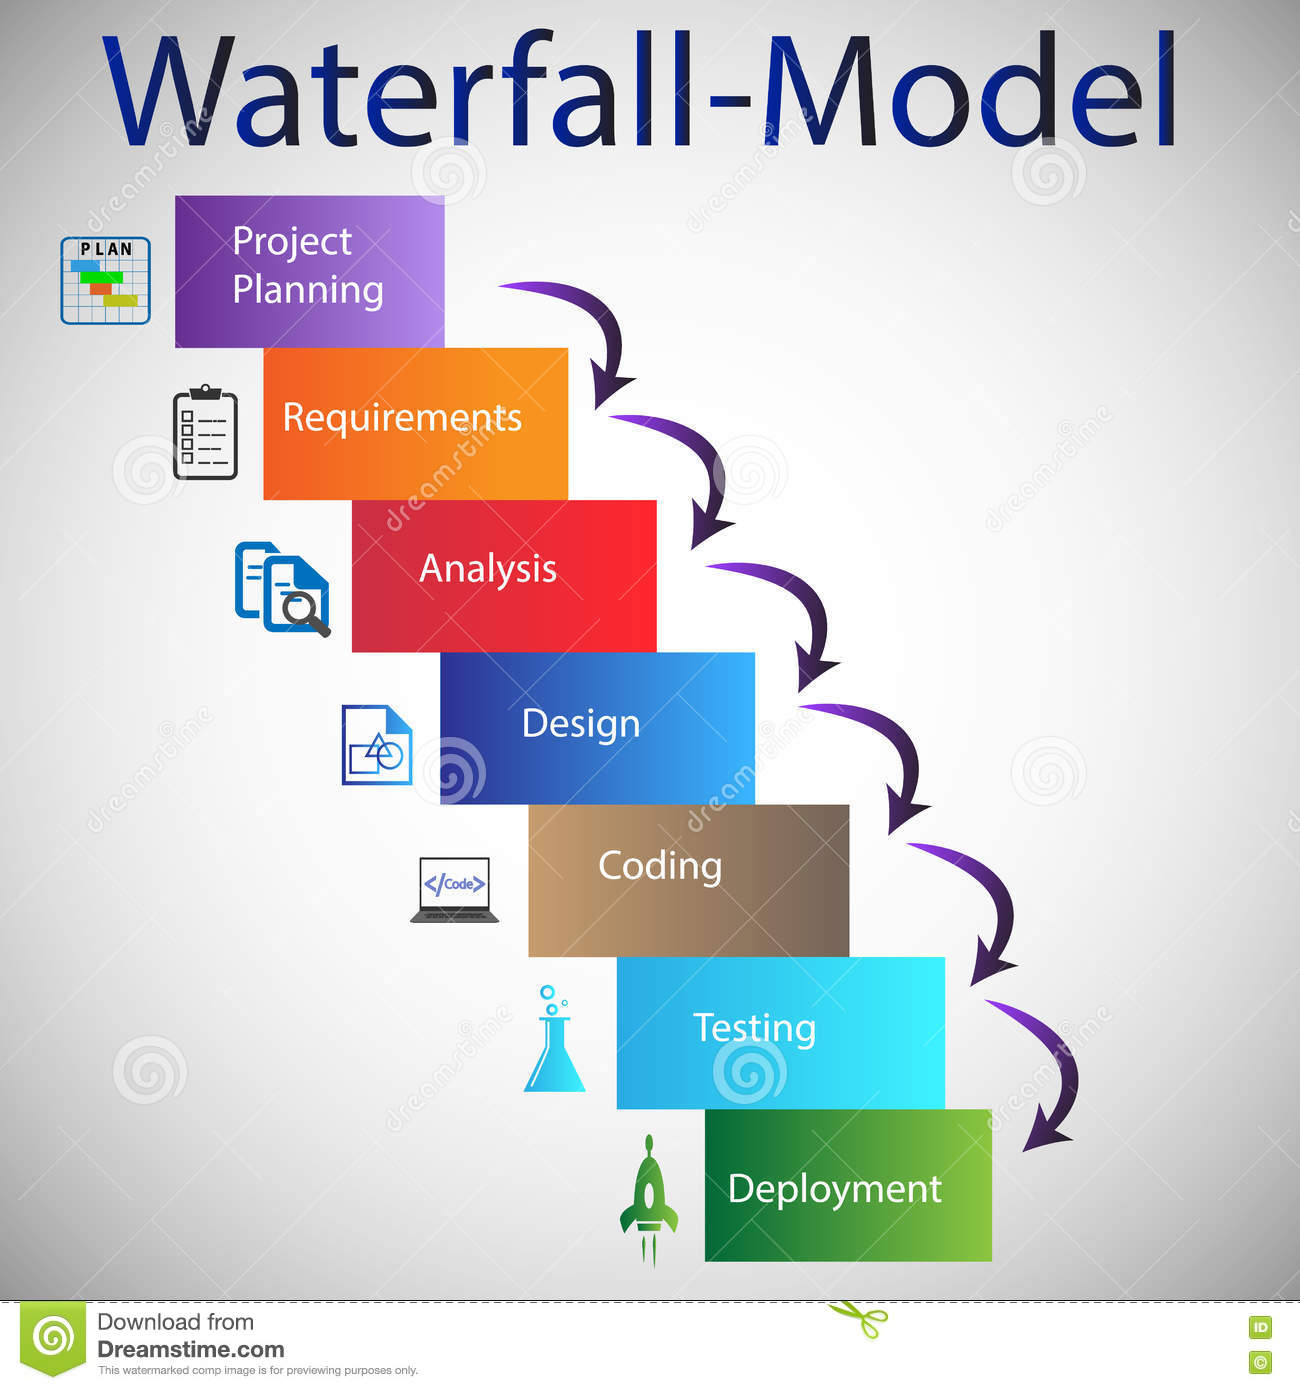 Software development life cycle waterfall model stock for What is waterfall methodology